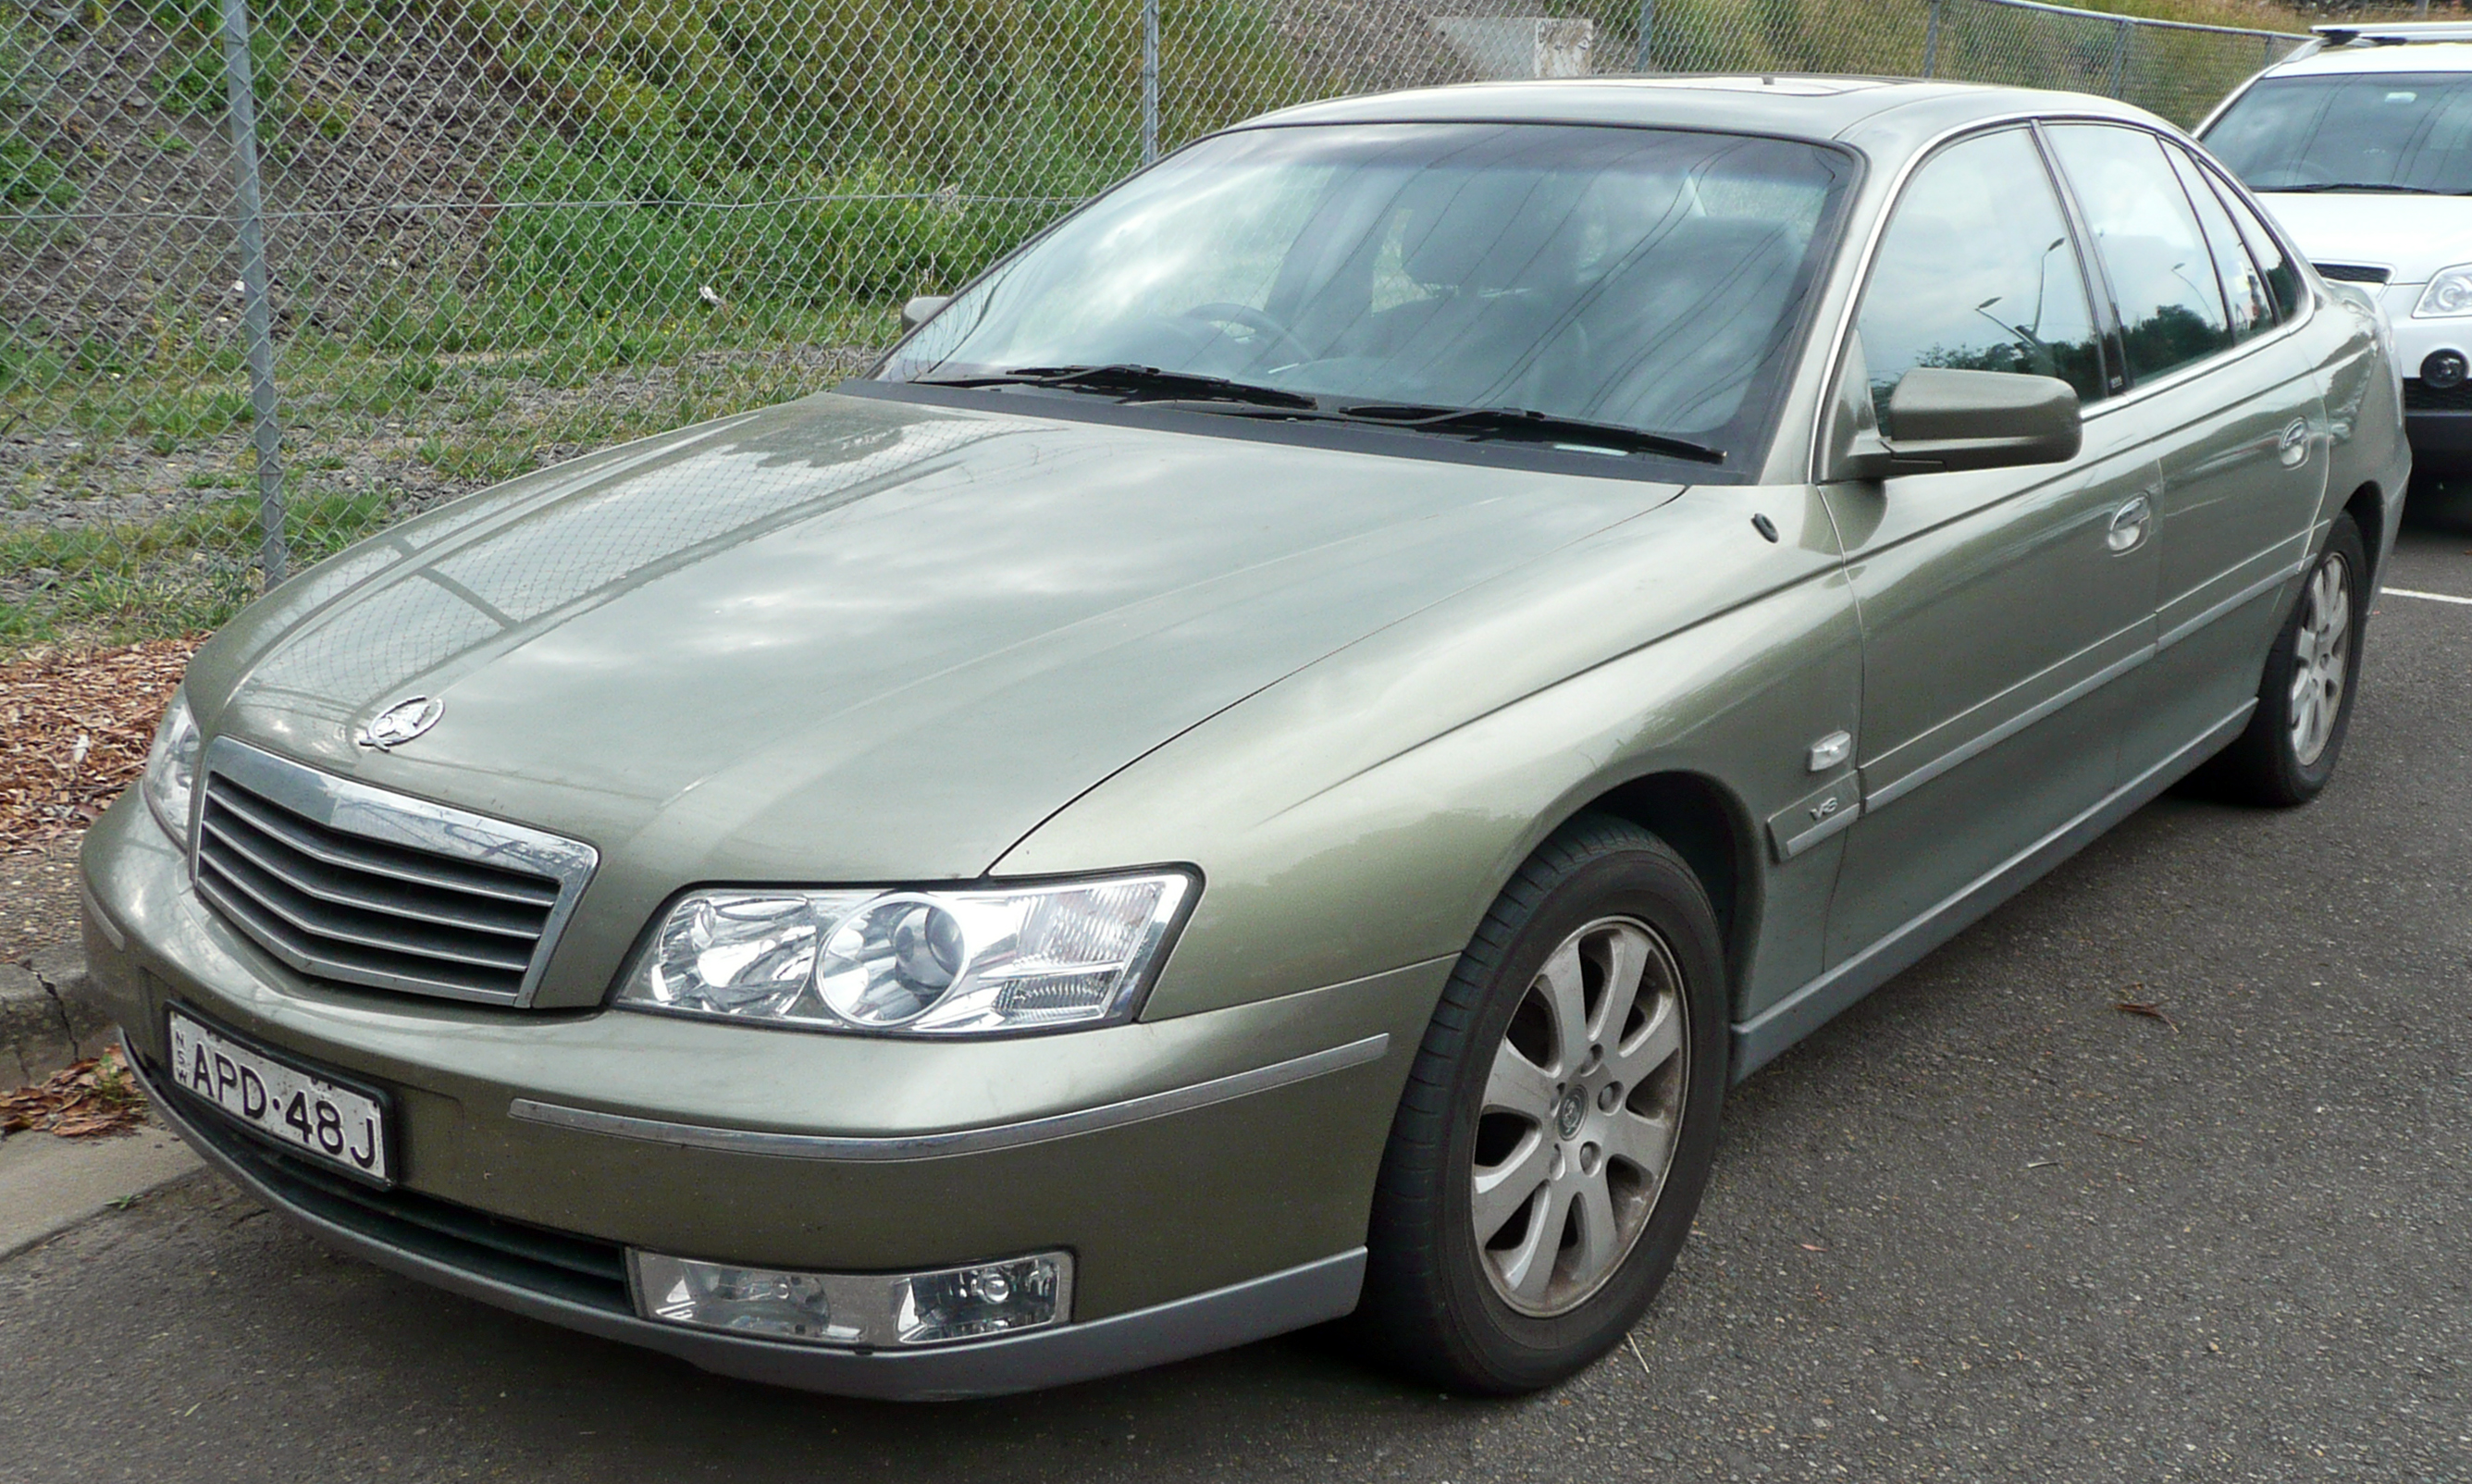 holden vectra (b) 2003 images